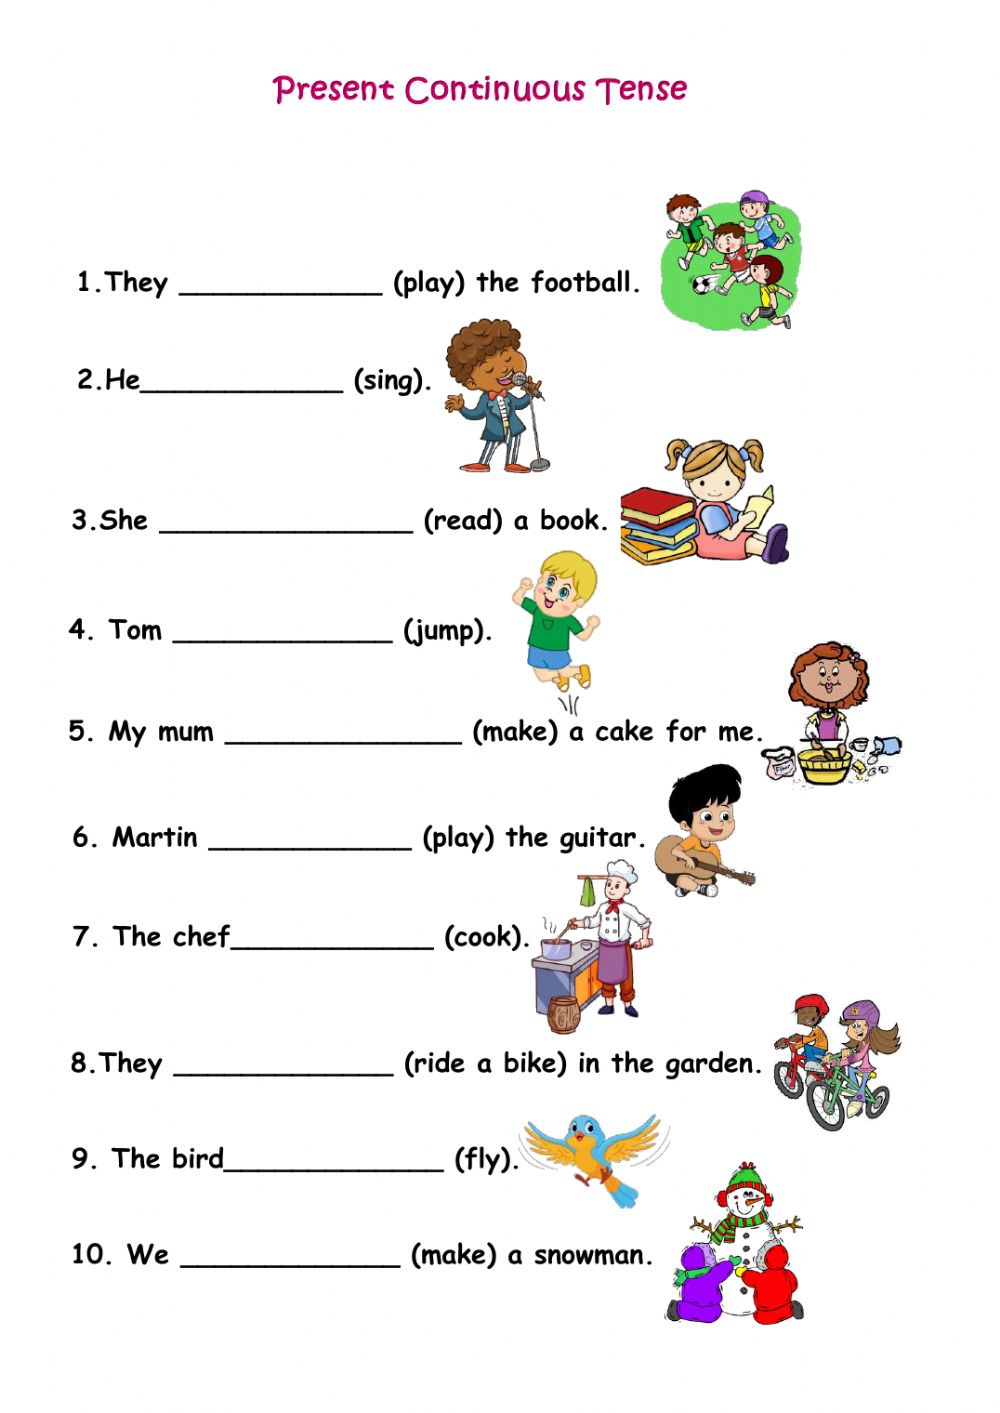 medium resolution of Present Continuous Tense interactive activity for Grade 2